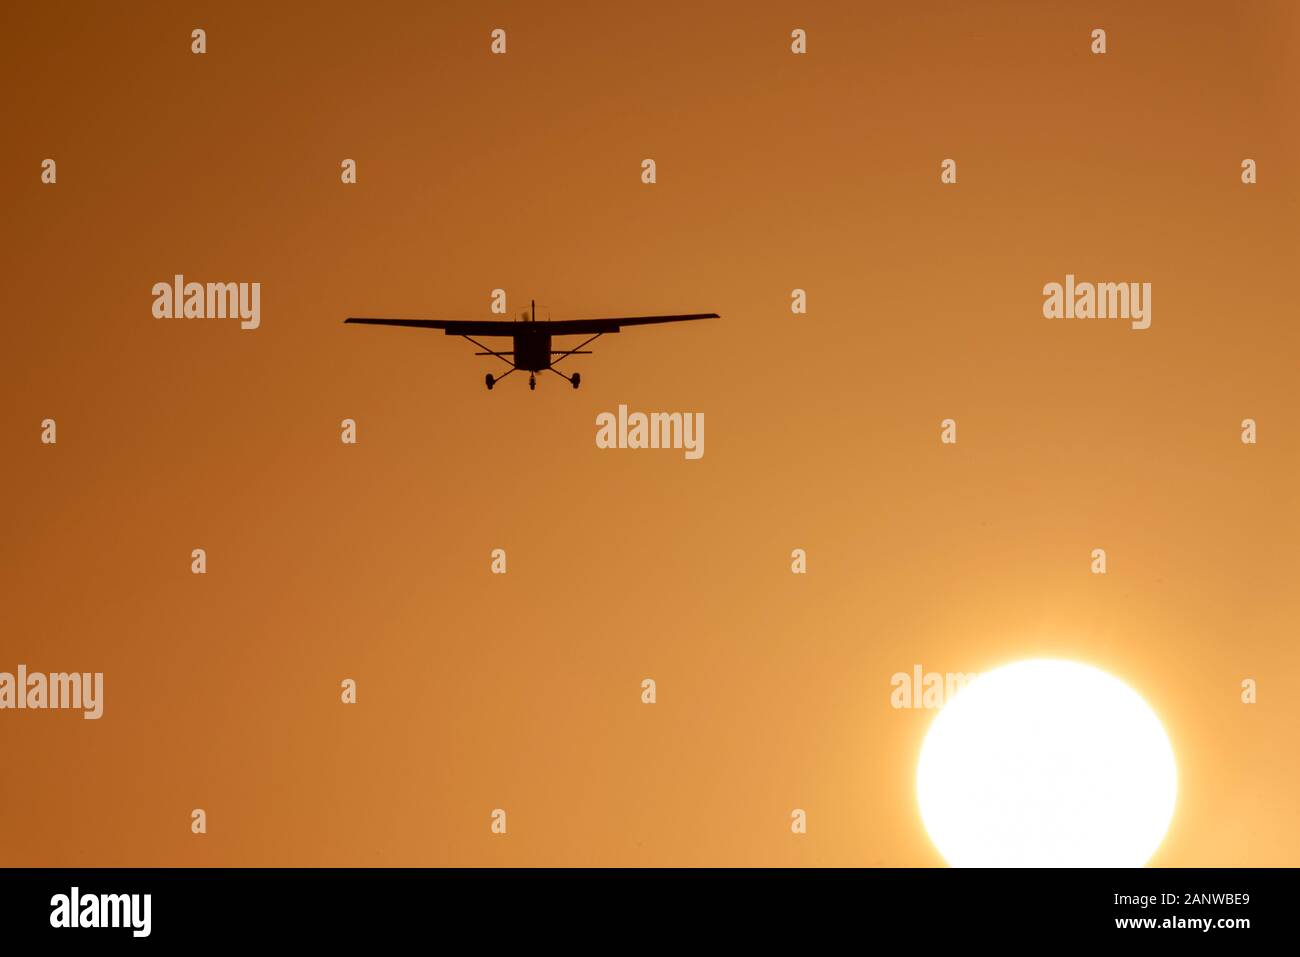 light-aircraft-plane-landing-at-london-southend-airport-essex-uk-late-afternoon-in-winter-sunset-dusk-cessna-airplane-over-sun-disc-orange-sky-2ANWBE9.jpg